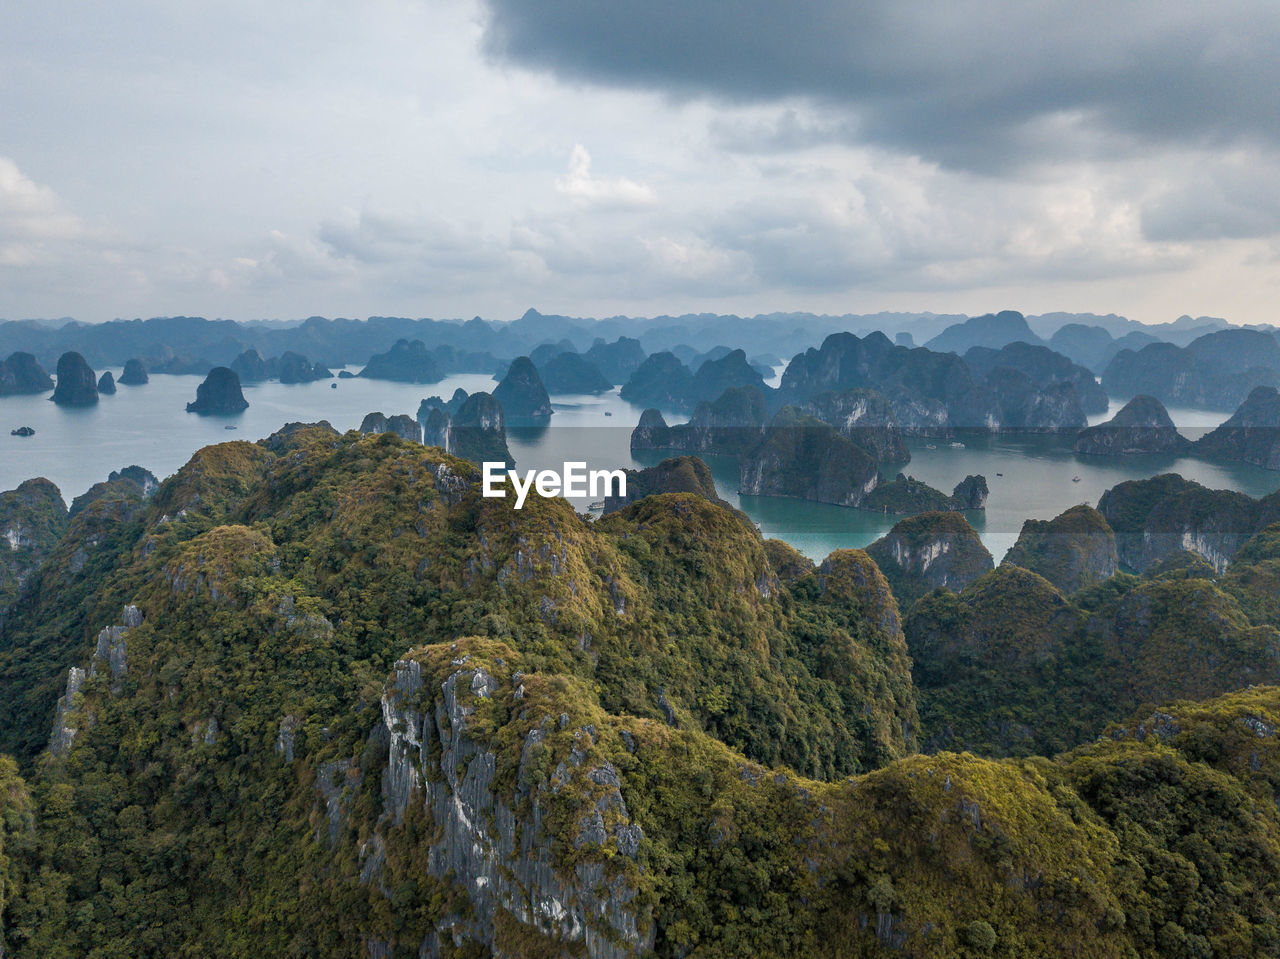 Scenic view of mountains and rock formations in sea against sky